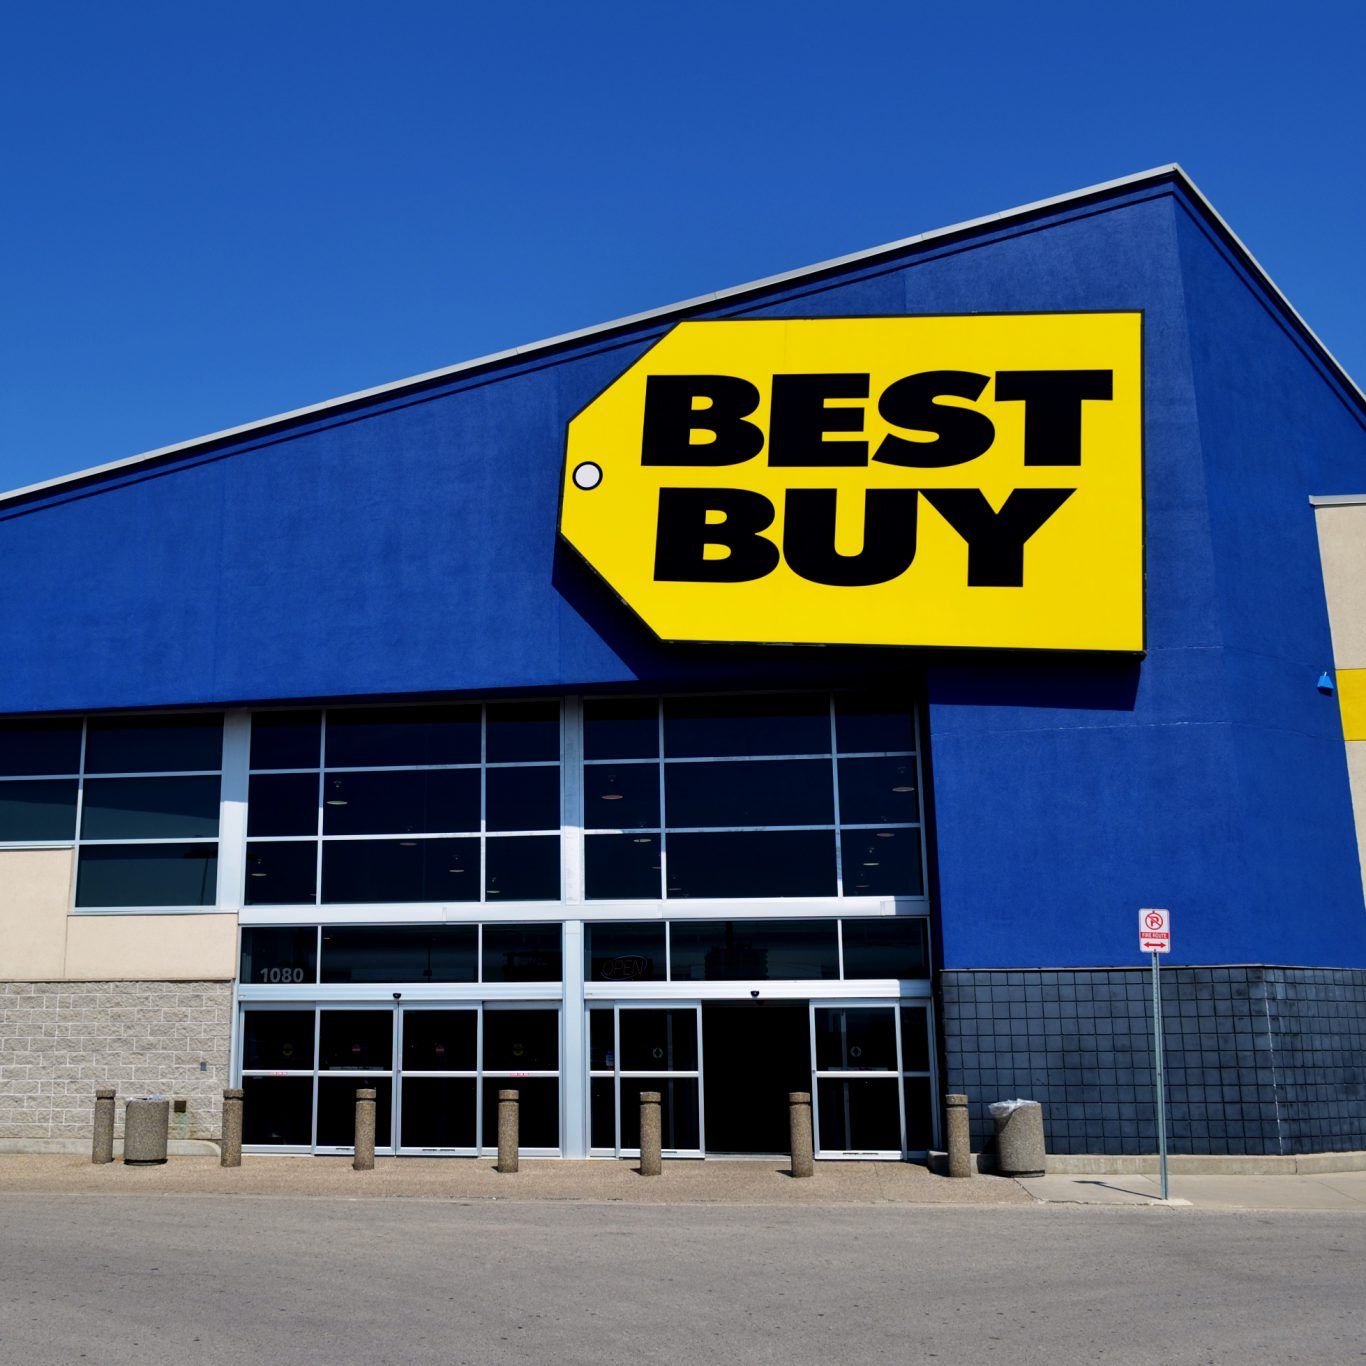 Best buy diversification strategy